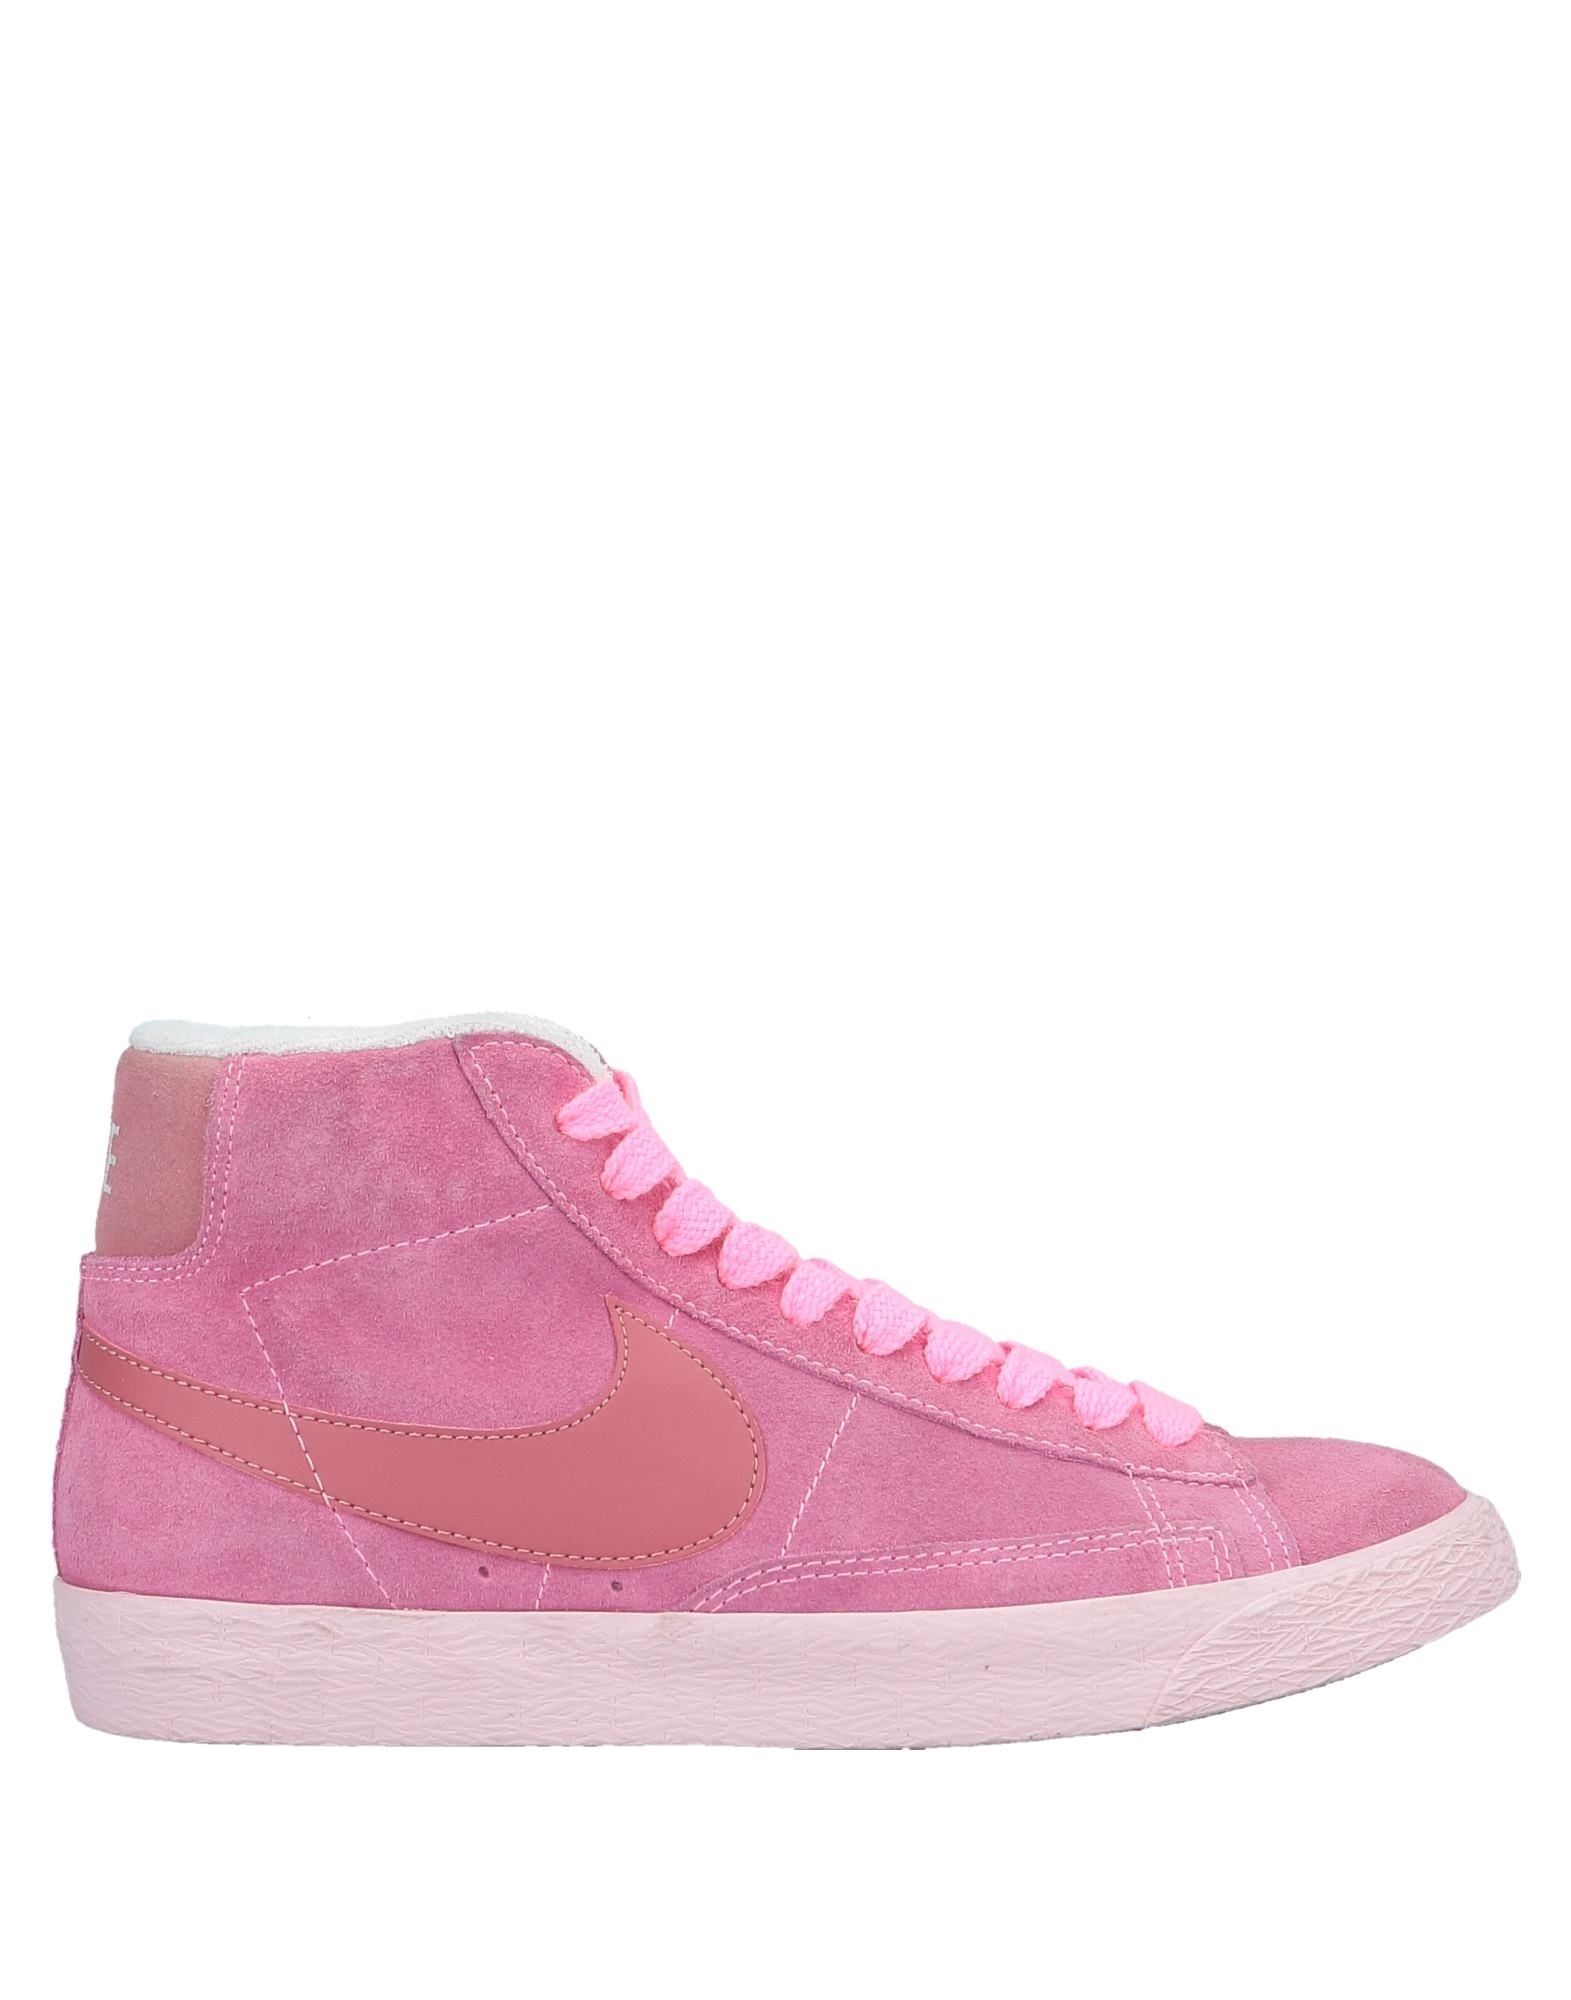 Nike on Sneakers - Women Nike Sneakers online on Nike  Canada - 11573642HR 4520dd